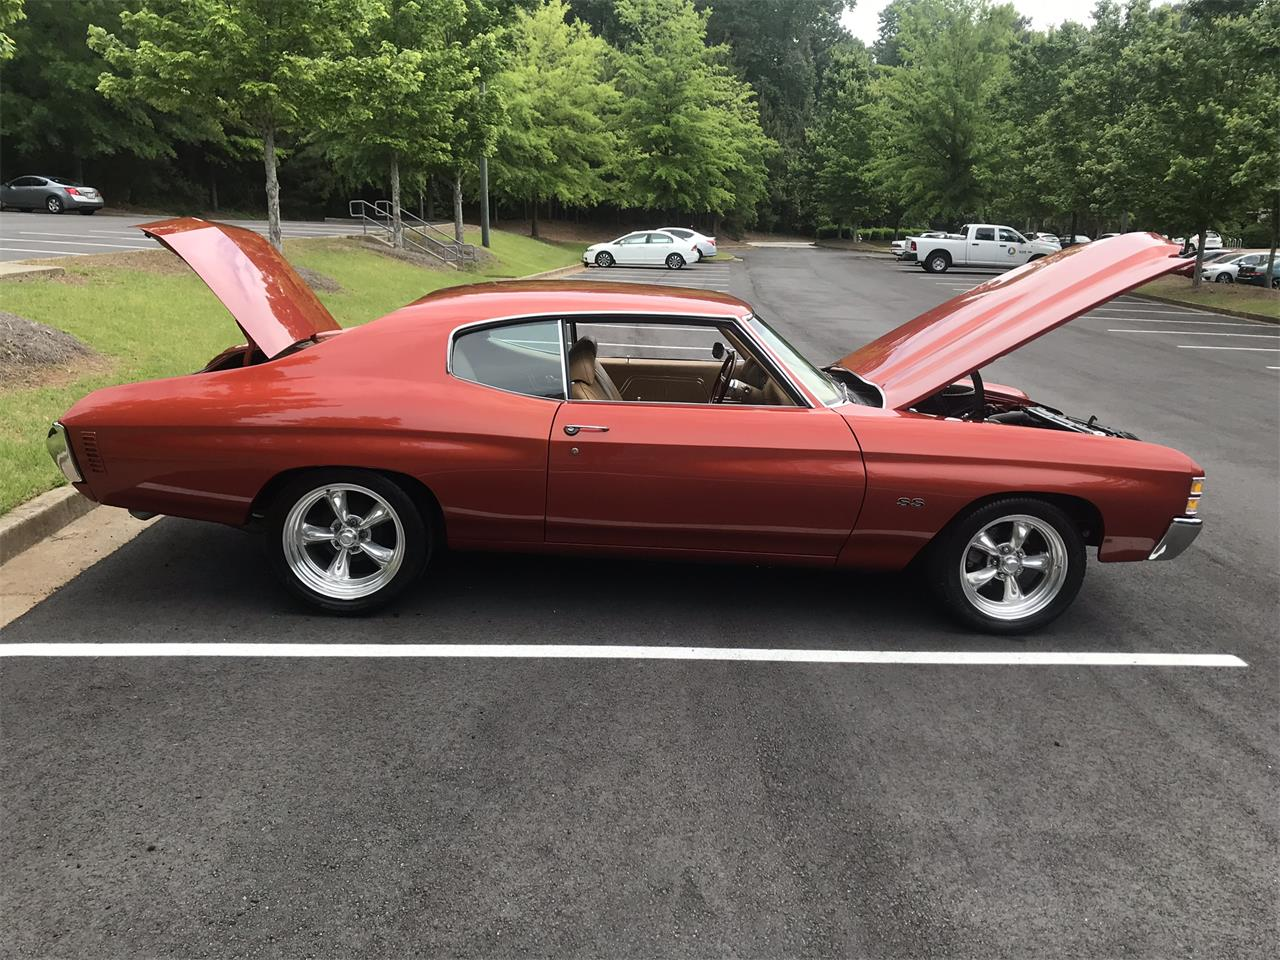 Large Picture of Classic '71 Chevrolet Chevelle SS located in Georgia - $36,000.00 - Q0XV